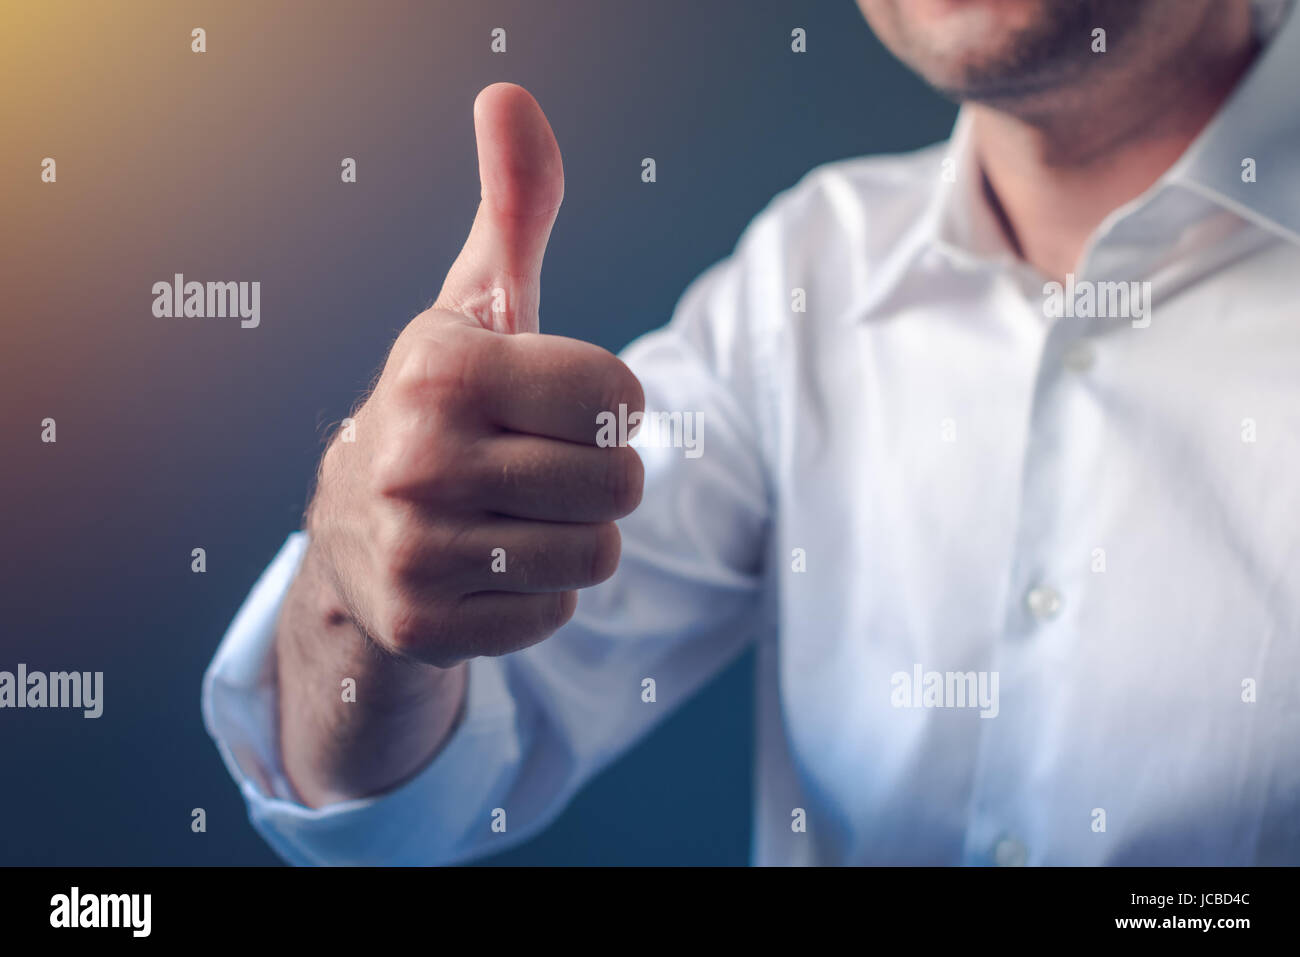 Businessman approving with raised thumb up gesture, business person in white shirt with roll up sleeves emphasizing - Stock Image